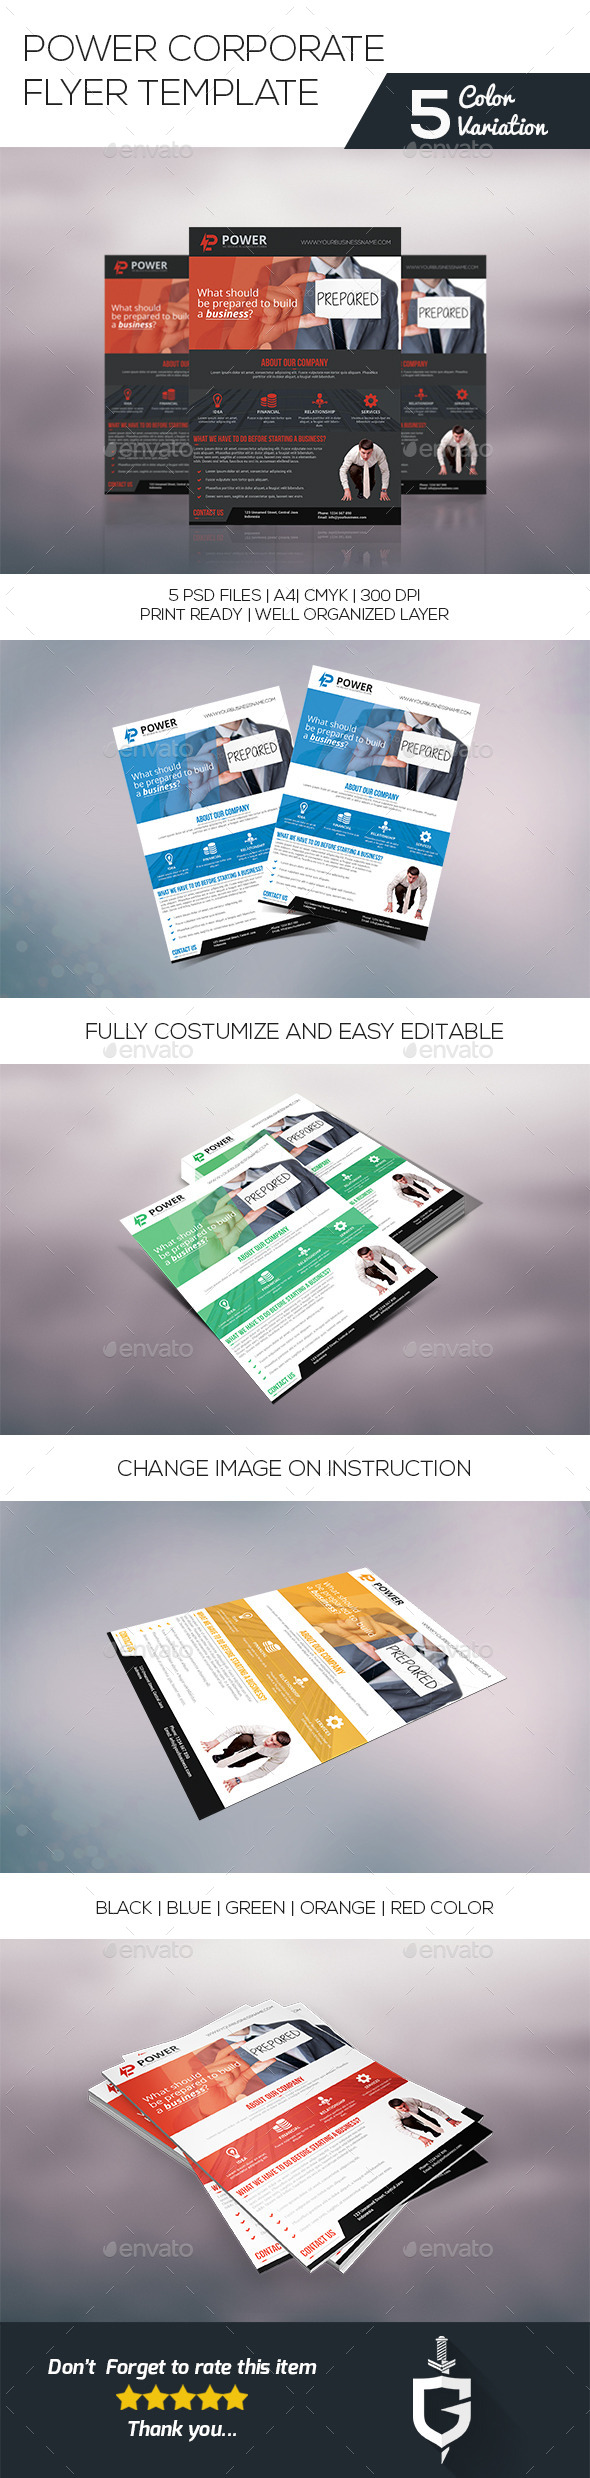 GraphicRiver Power Corporate Flyer Template 10159669